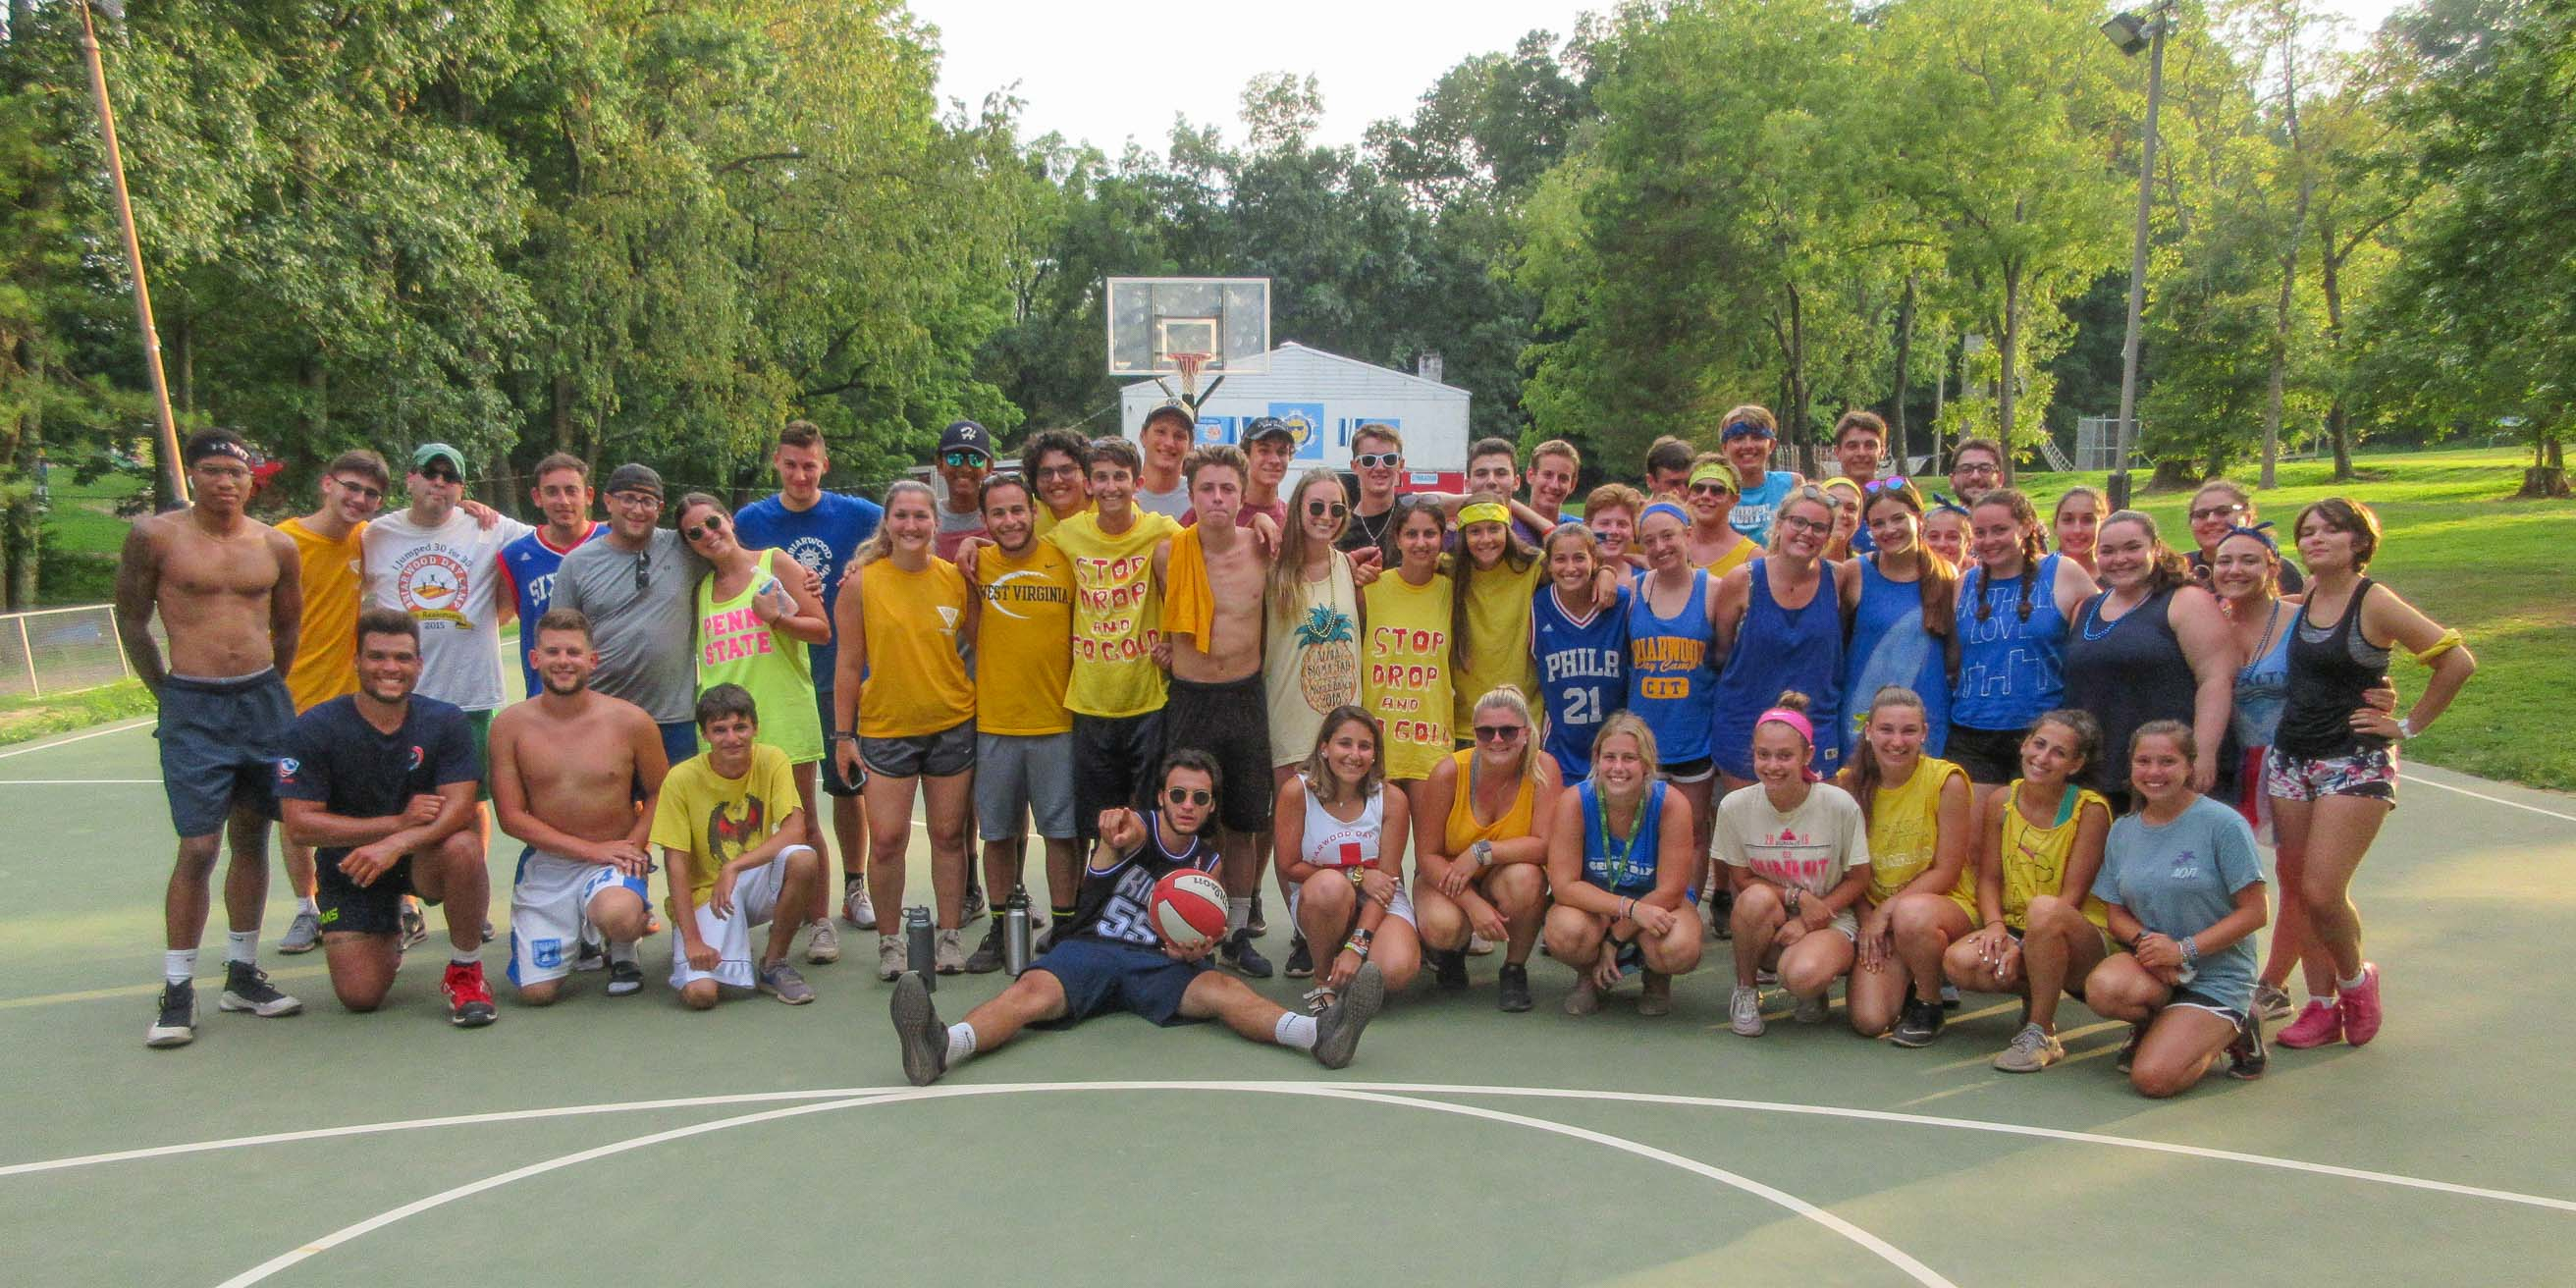 Staff group on basketball court smiling